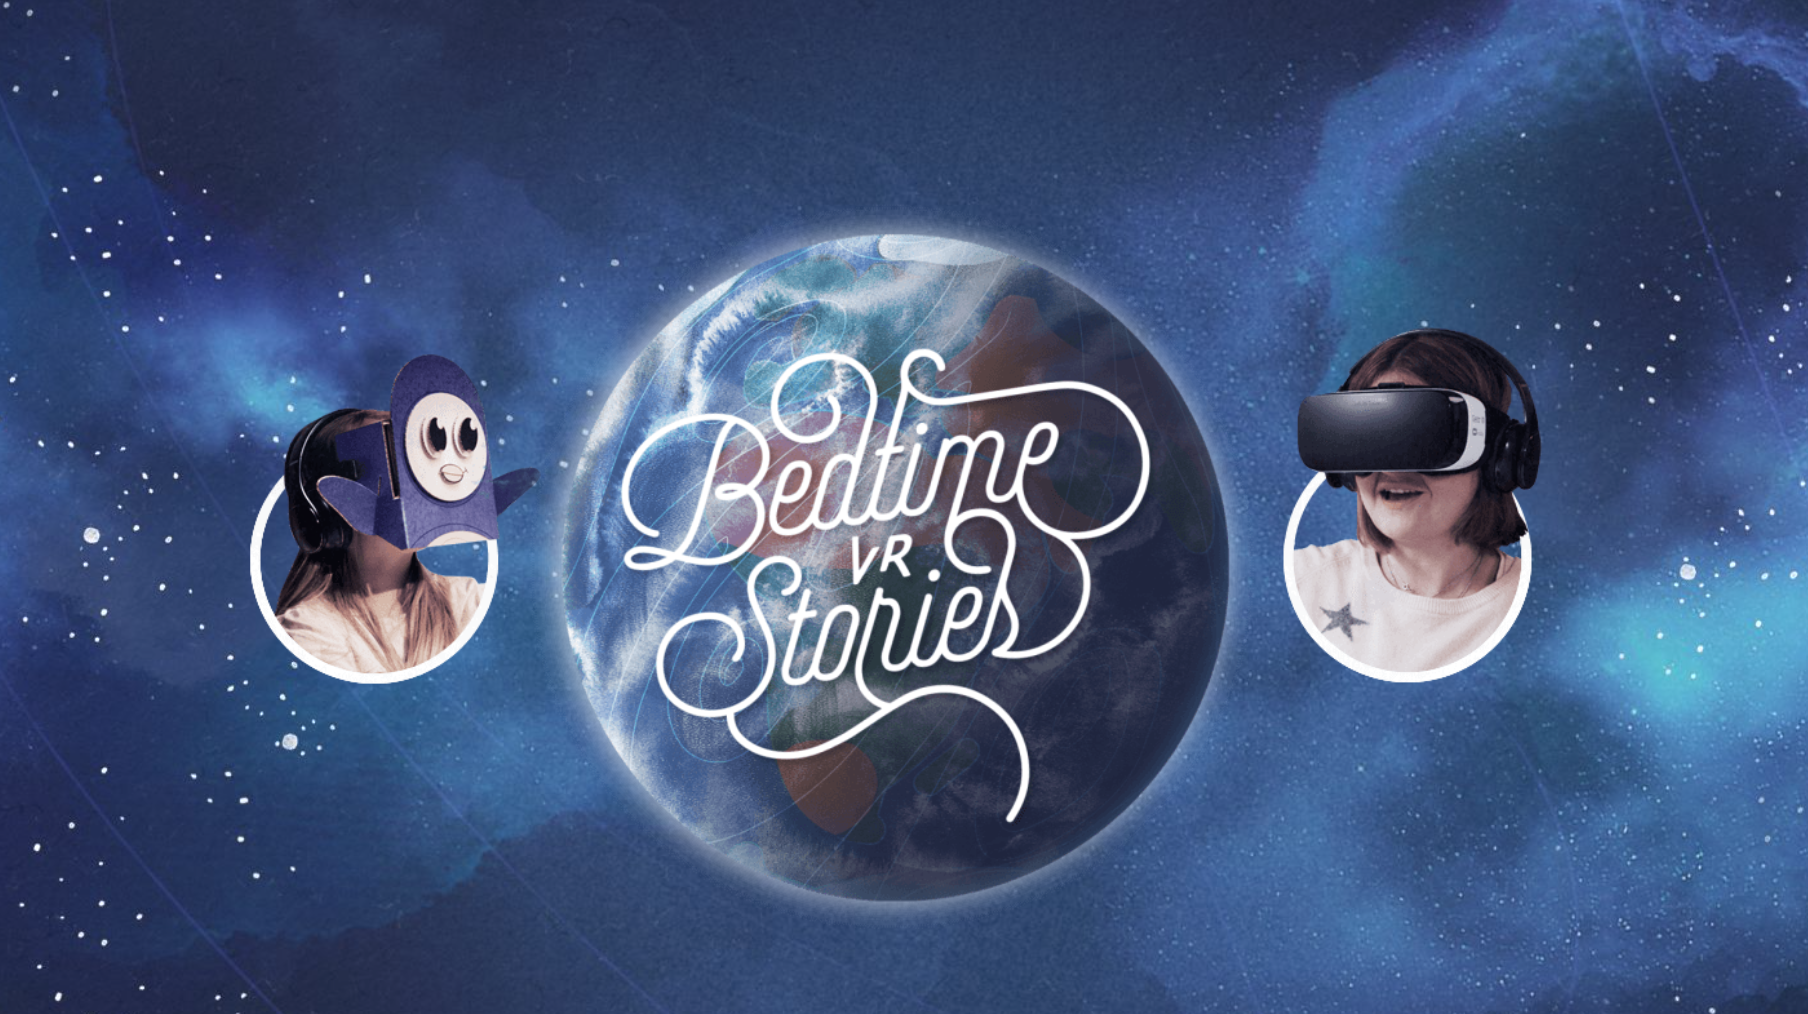 Samsung bedtime stories app virtual reality kids